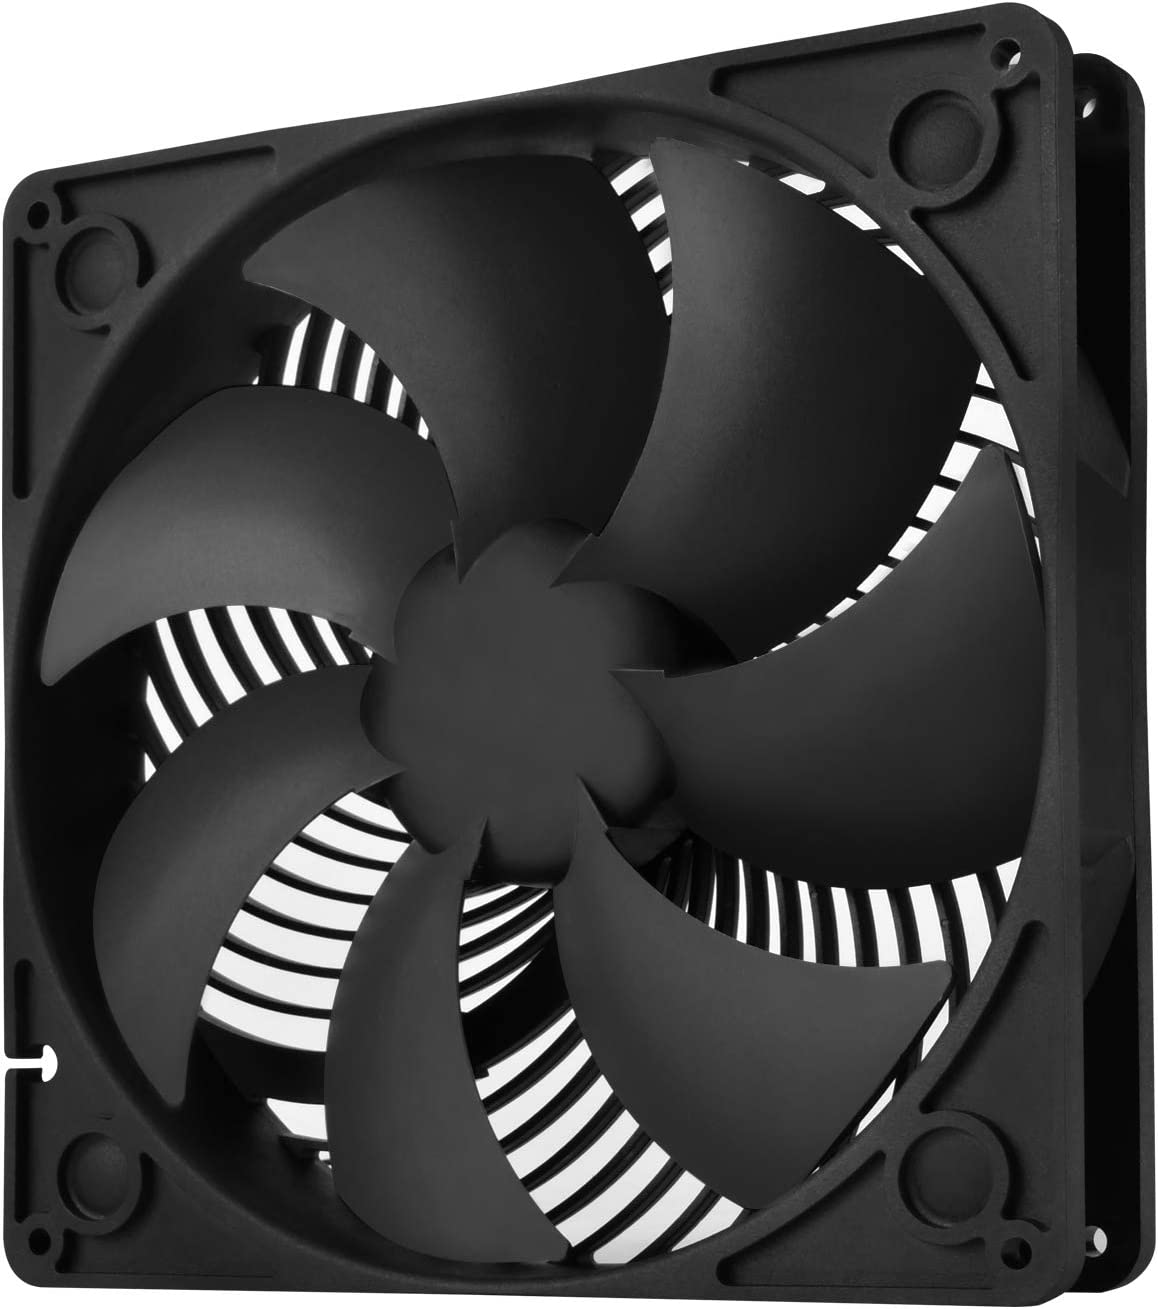 SilverStone Technology 180mm PWM Computer Case Fan 4001500RPM Dual Ball Bearing with 32mm Thickness SST-AP183